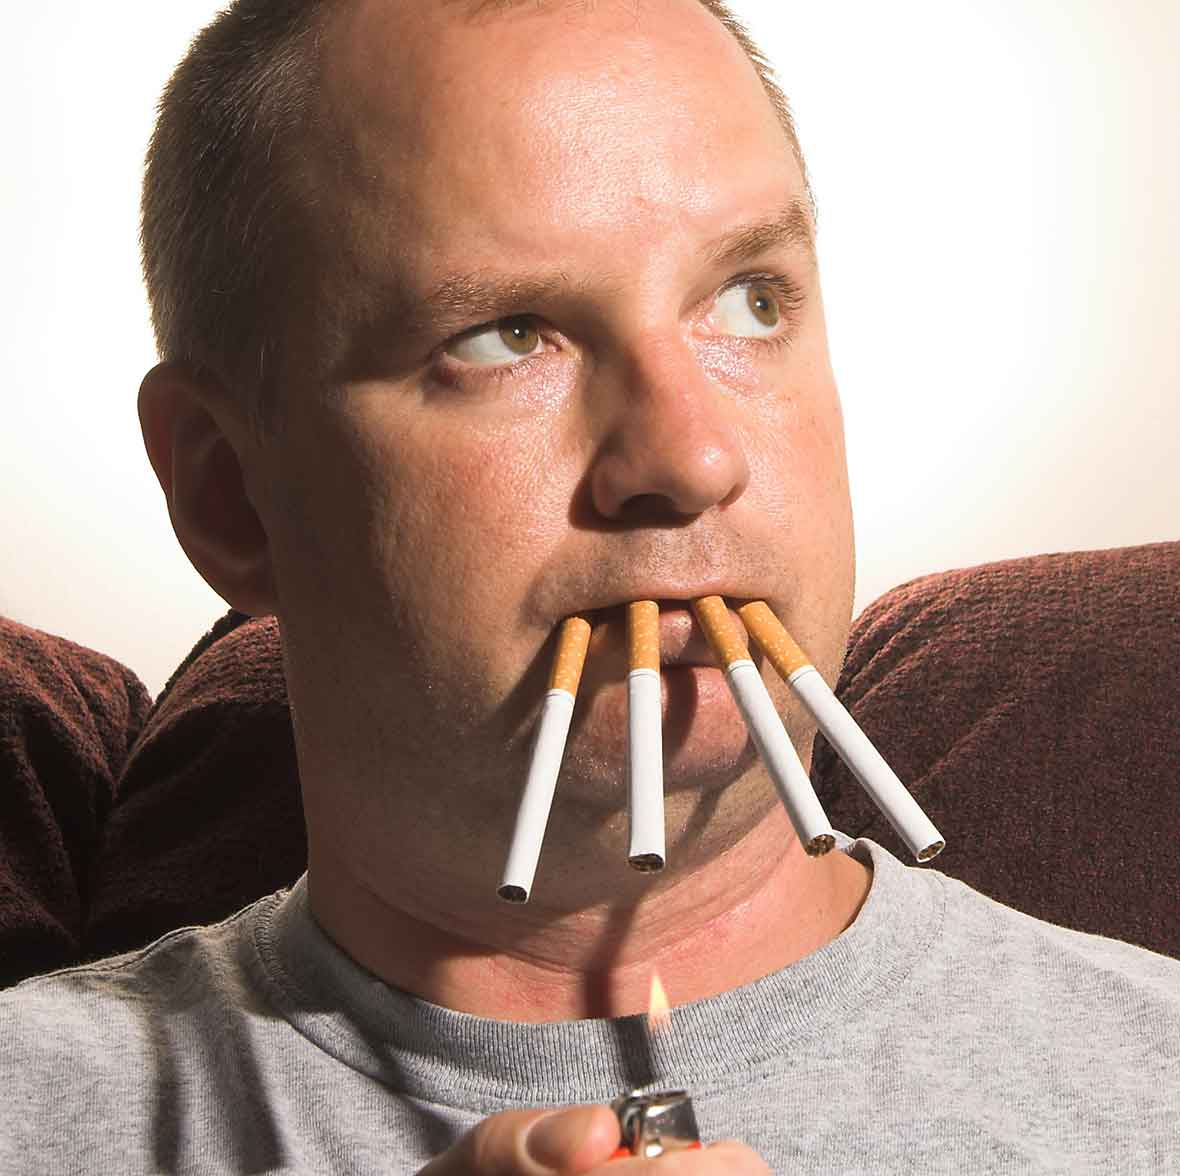 Does Smoking Cause Hair Loss?